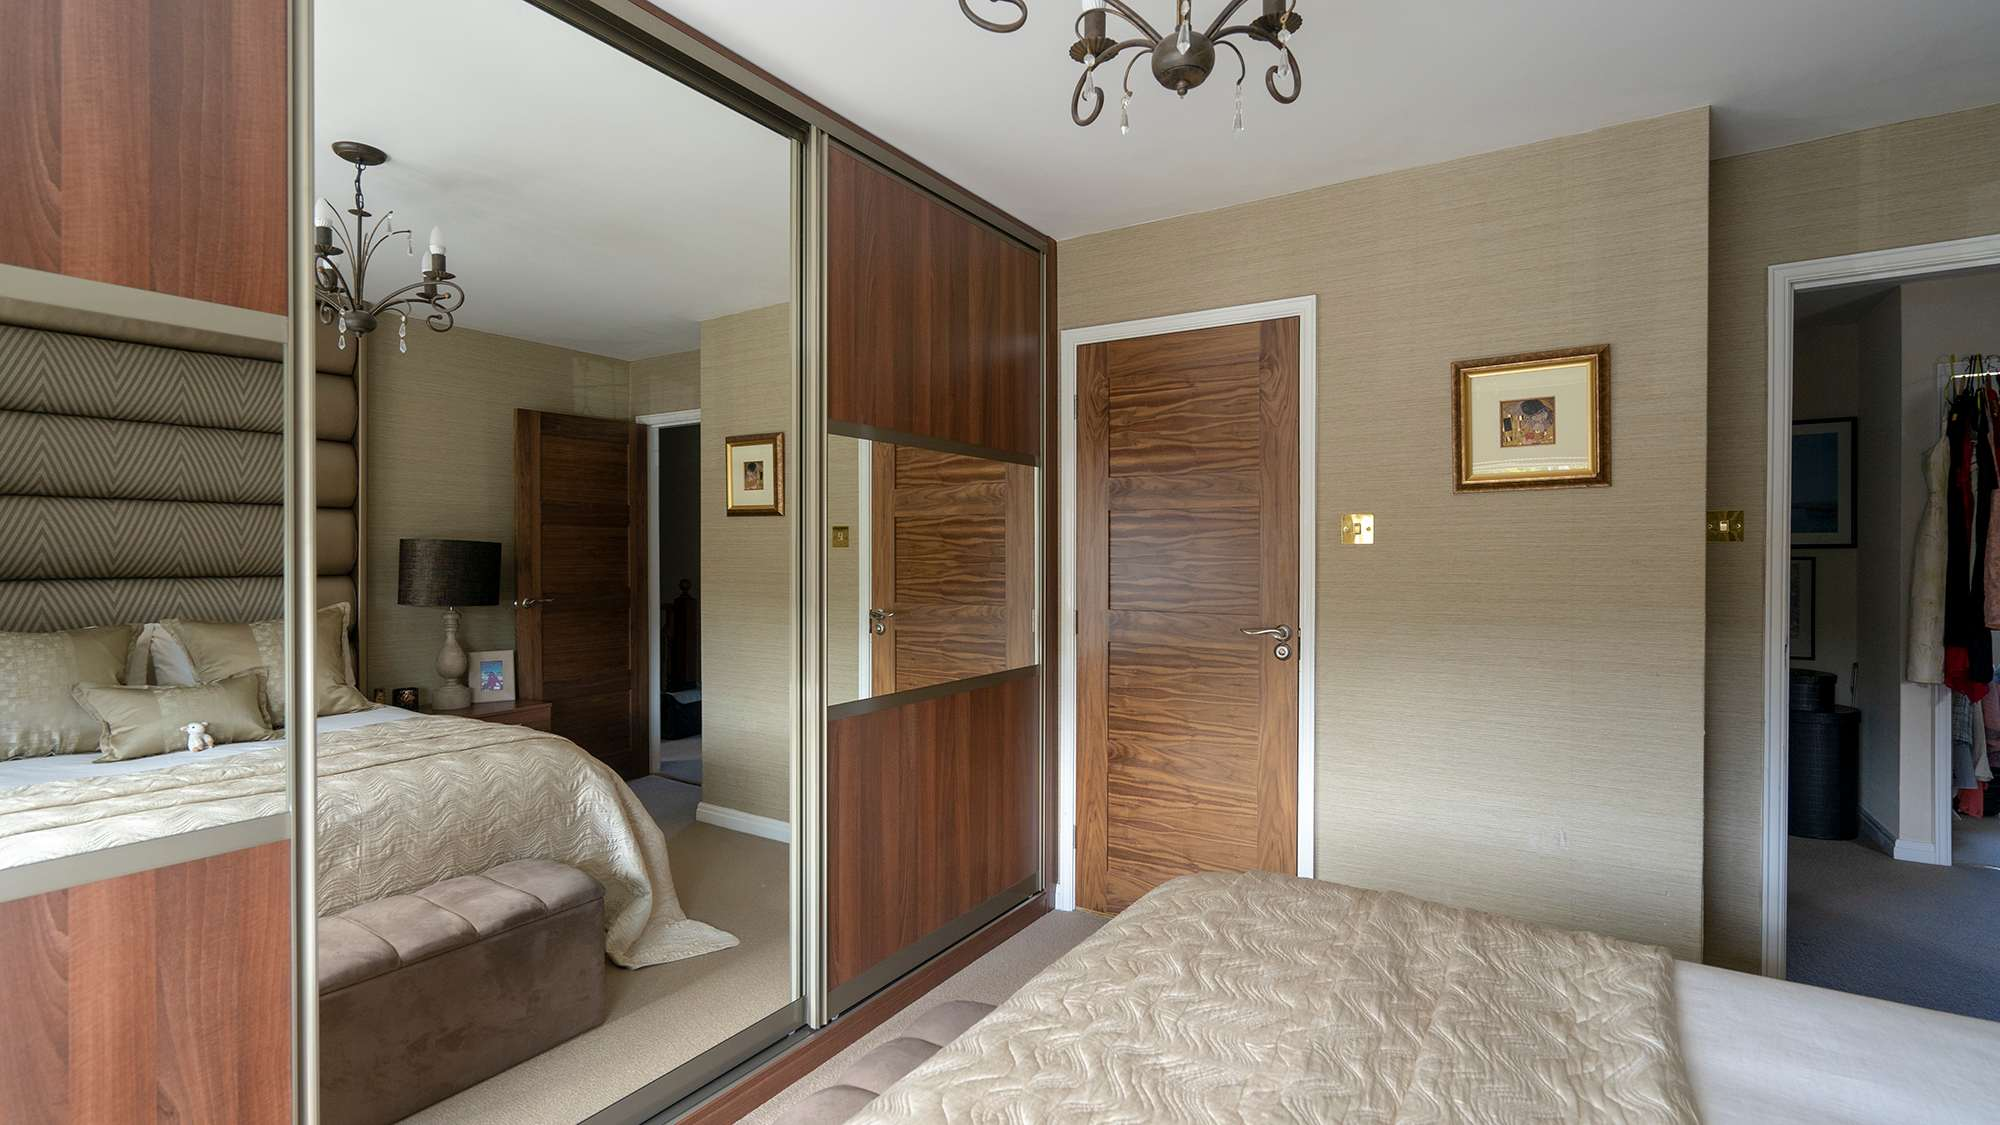 Alternative shot of our replacement sliding wardrobe doors, rails and surrounding hardware.